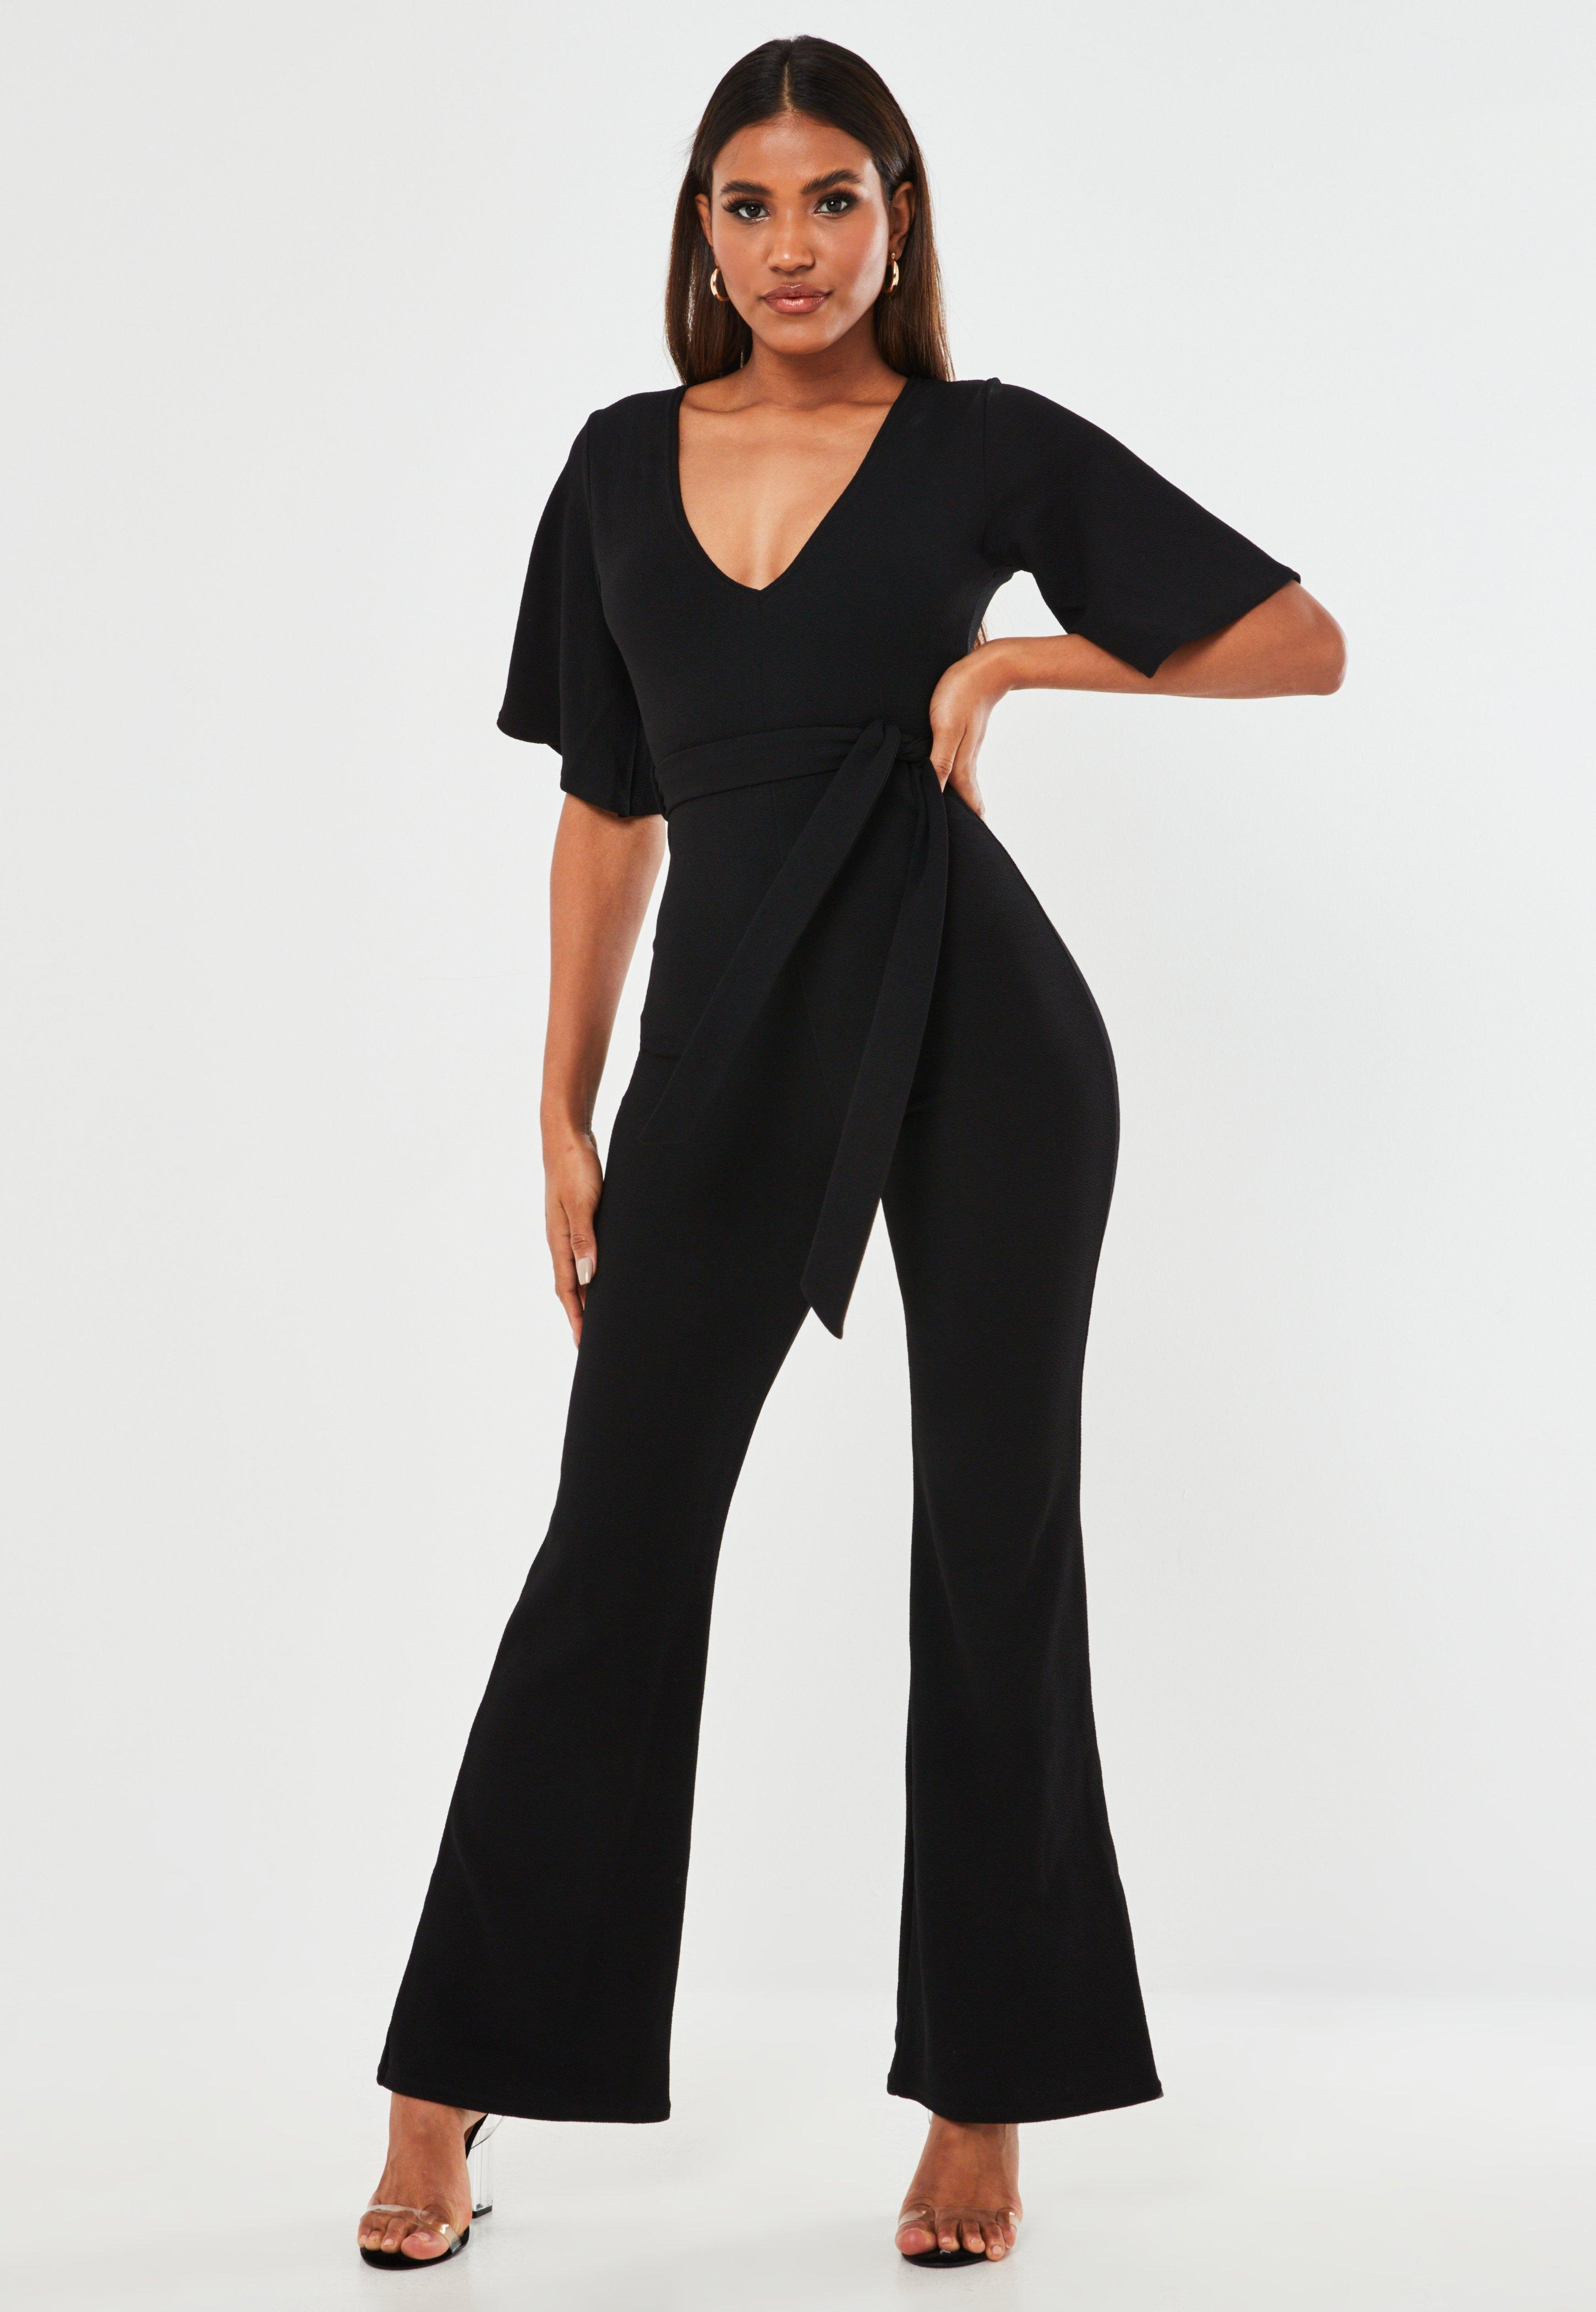 ca82026a2c3e Evening Jumpsuits